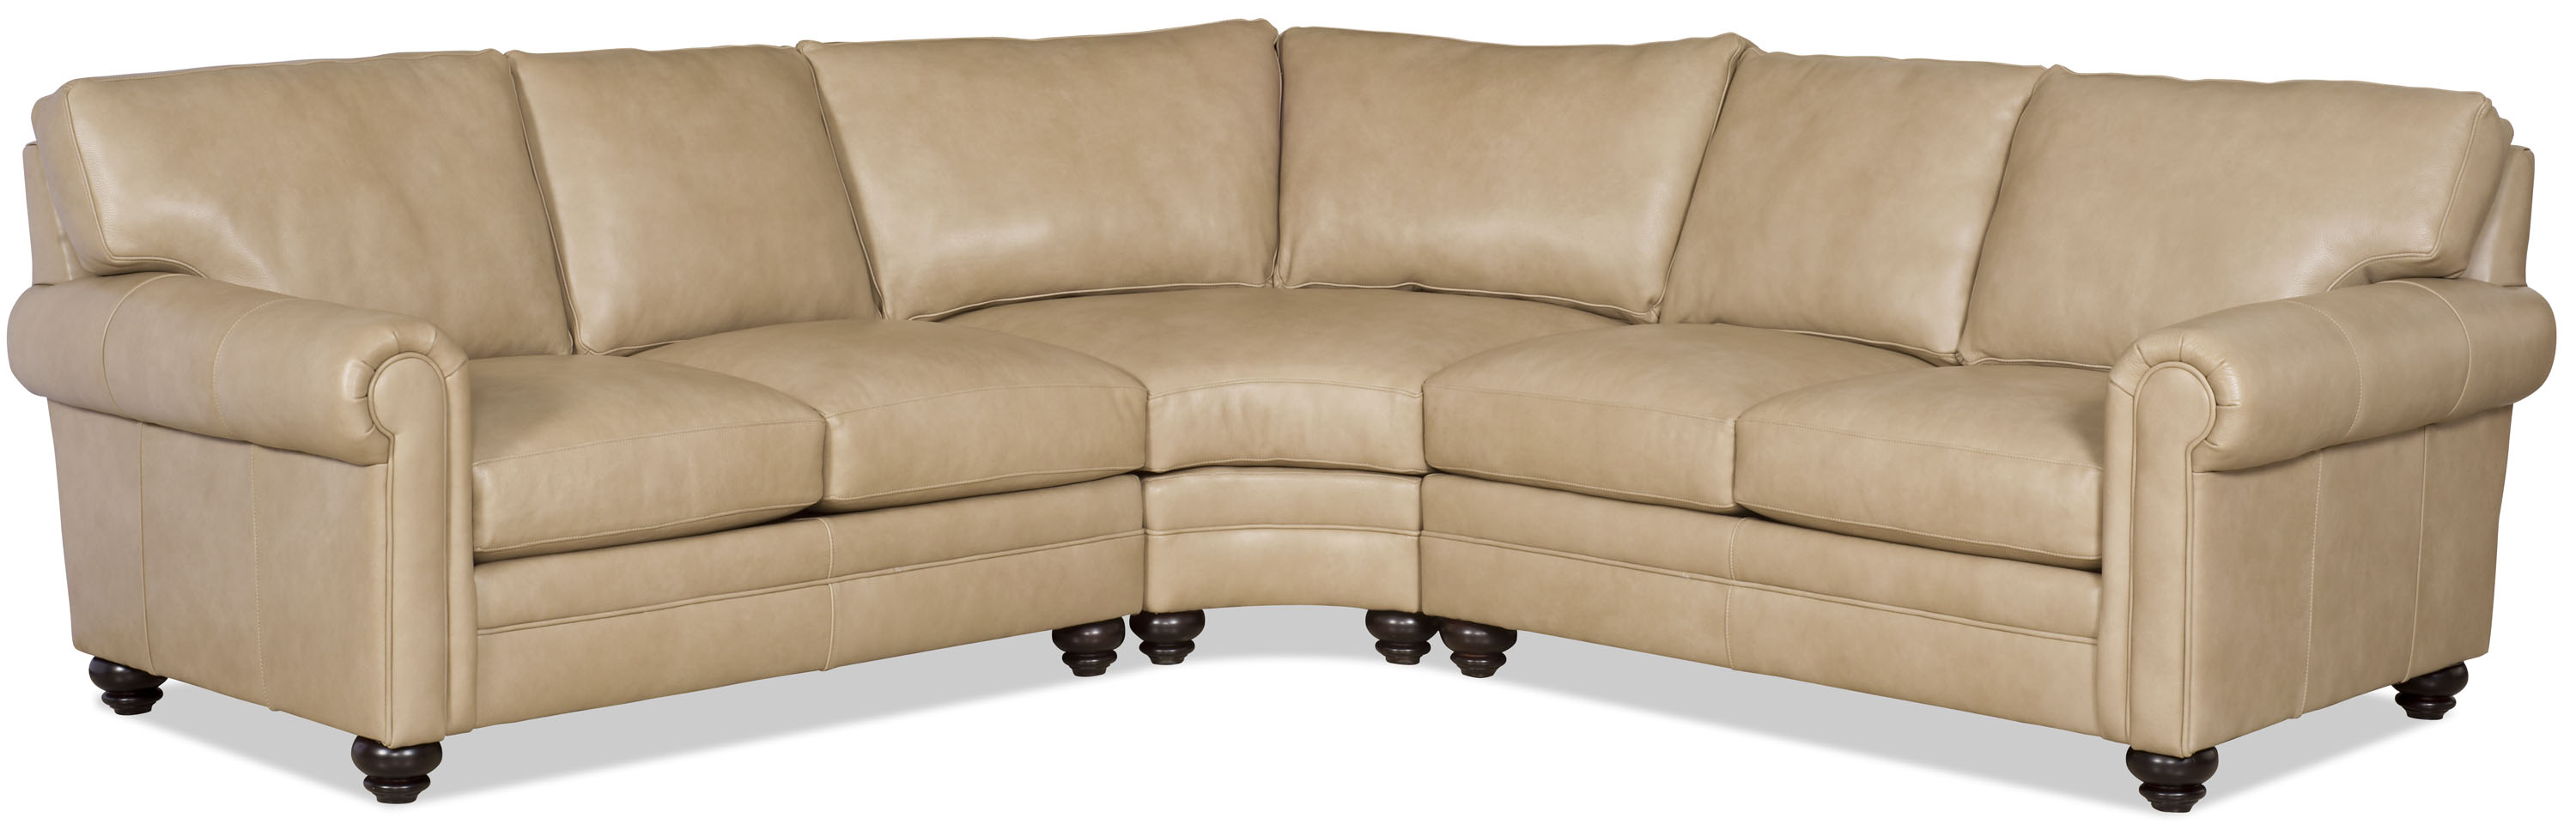 Daire Leather Sectional